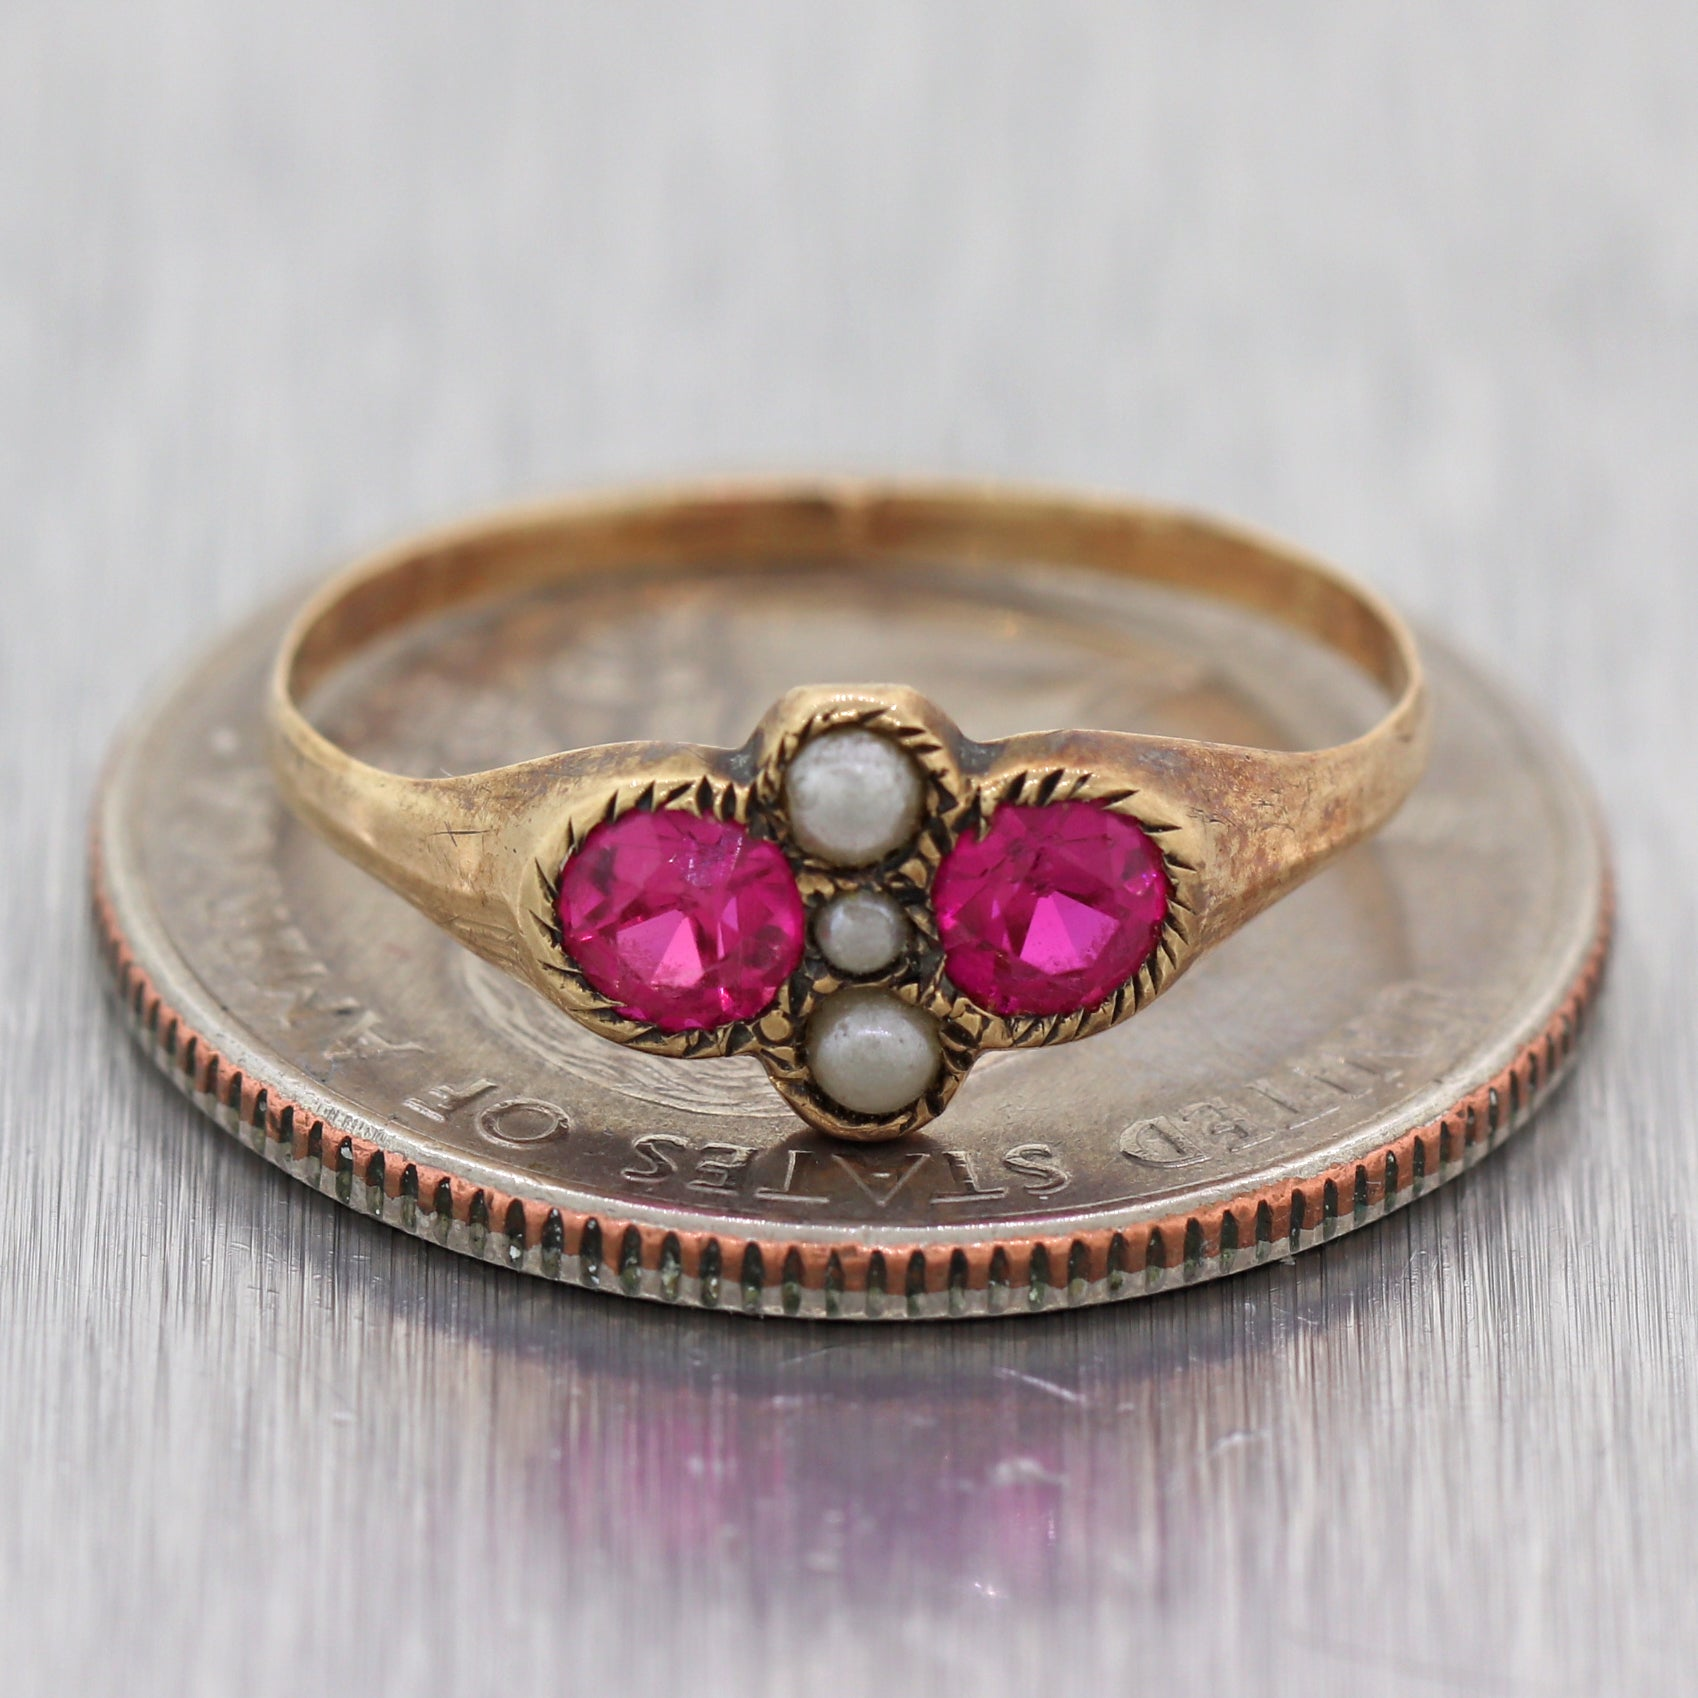 1880's Antique Victorian 14k Yellow Gold Synthetic Pink Ruby Ring